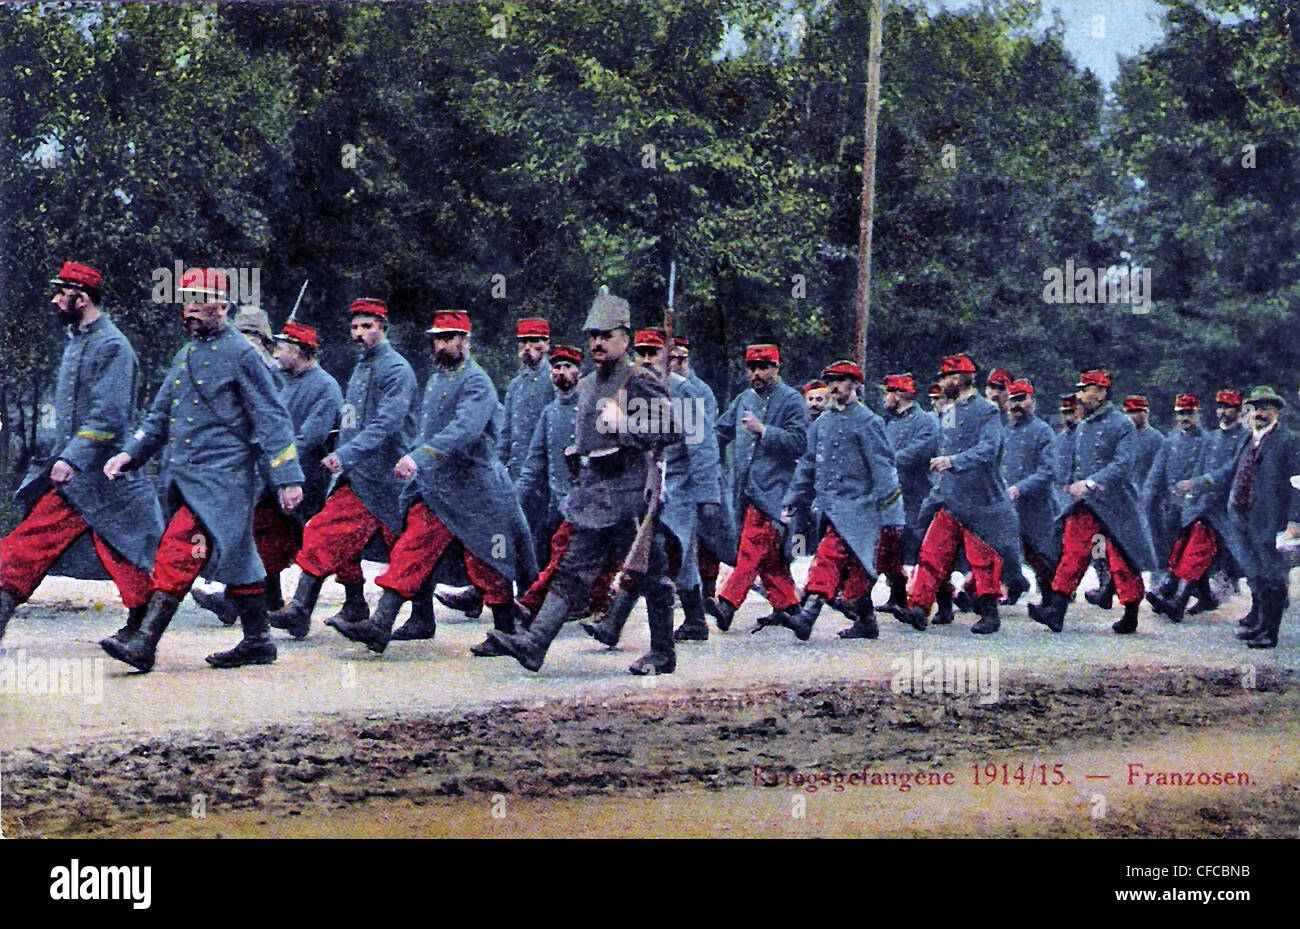 French, prisoners of war, German forest, 1914, soldiers, army, military, World War I, War, World War, Europe, 1914 - Stock Image